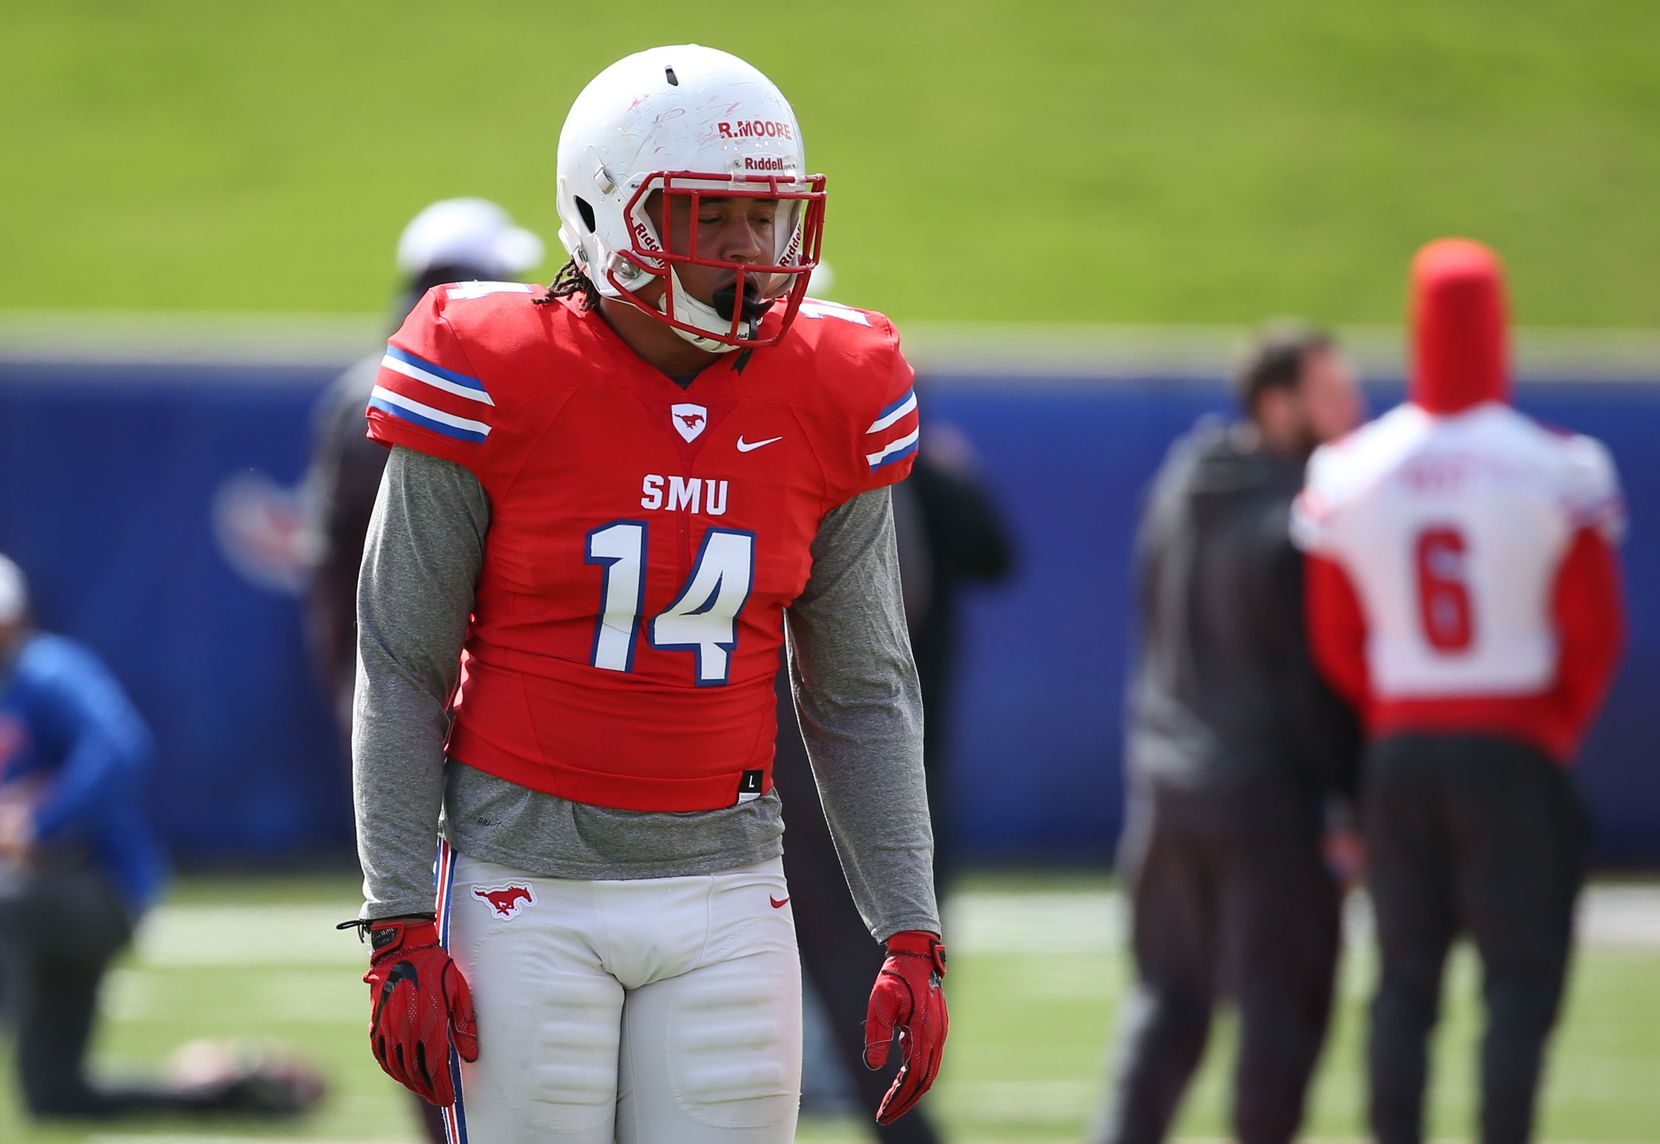 Southern Methodist Mustangs linebacker Richard Moore (14) walks on the field before Southern Methodist Mustangs's spring game at Gerald J. Ford Stadium on Saturday, April 14, 2018.